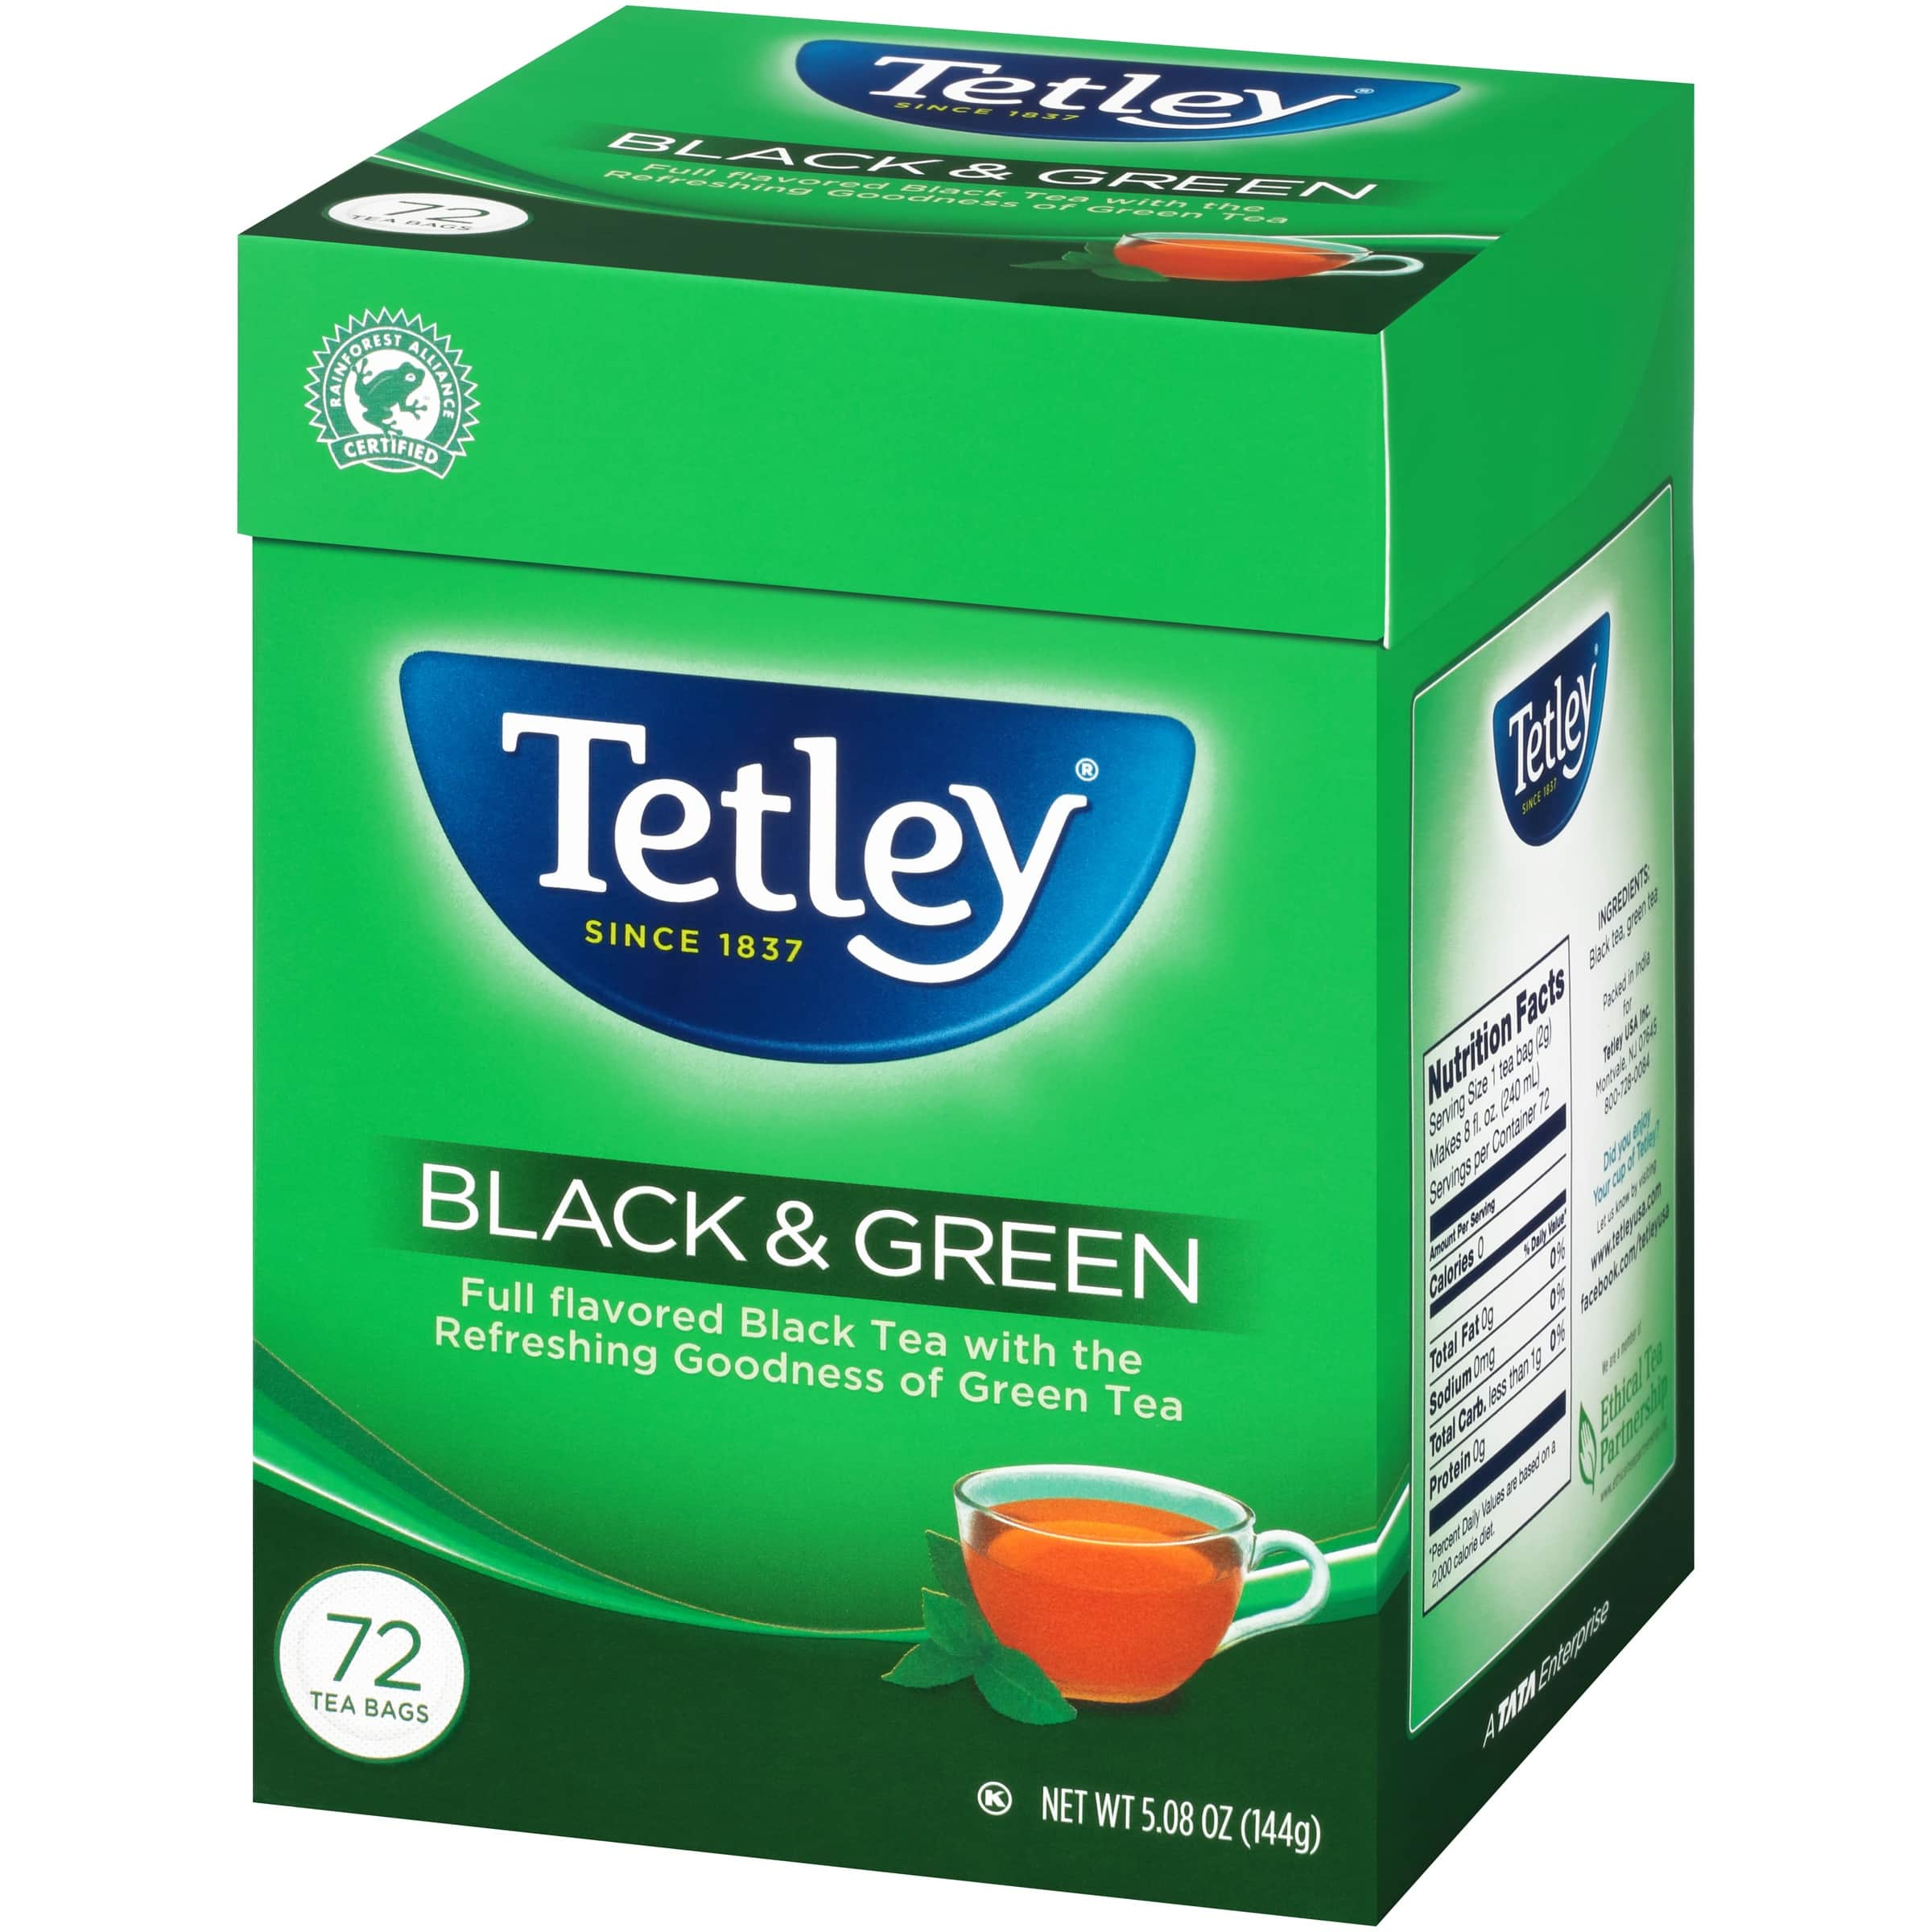 Back Again: Tetley Tea Bags, Black and Green, 72 Count as low as $2.53 + Free Shipping with S&S